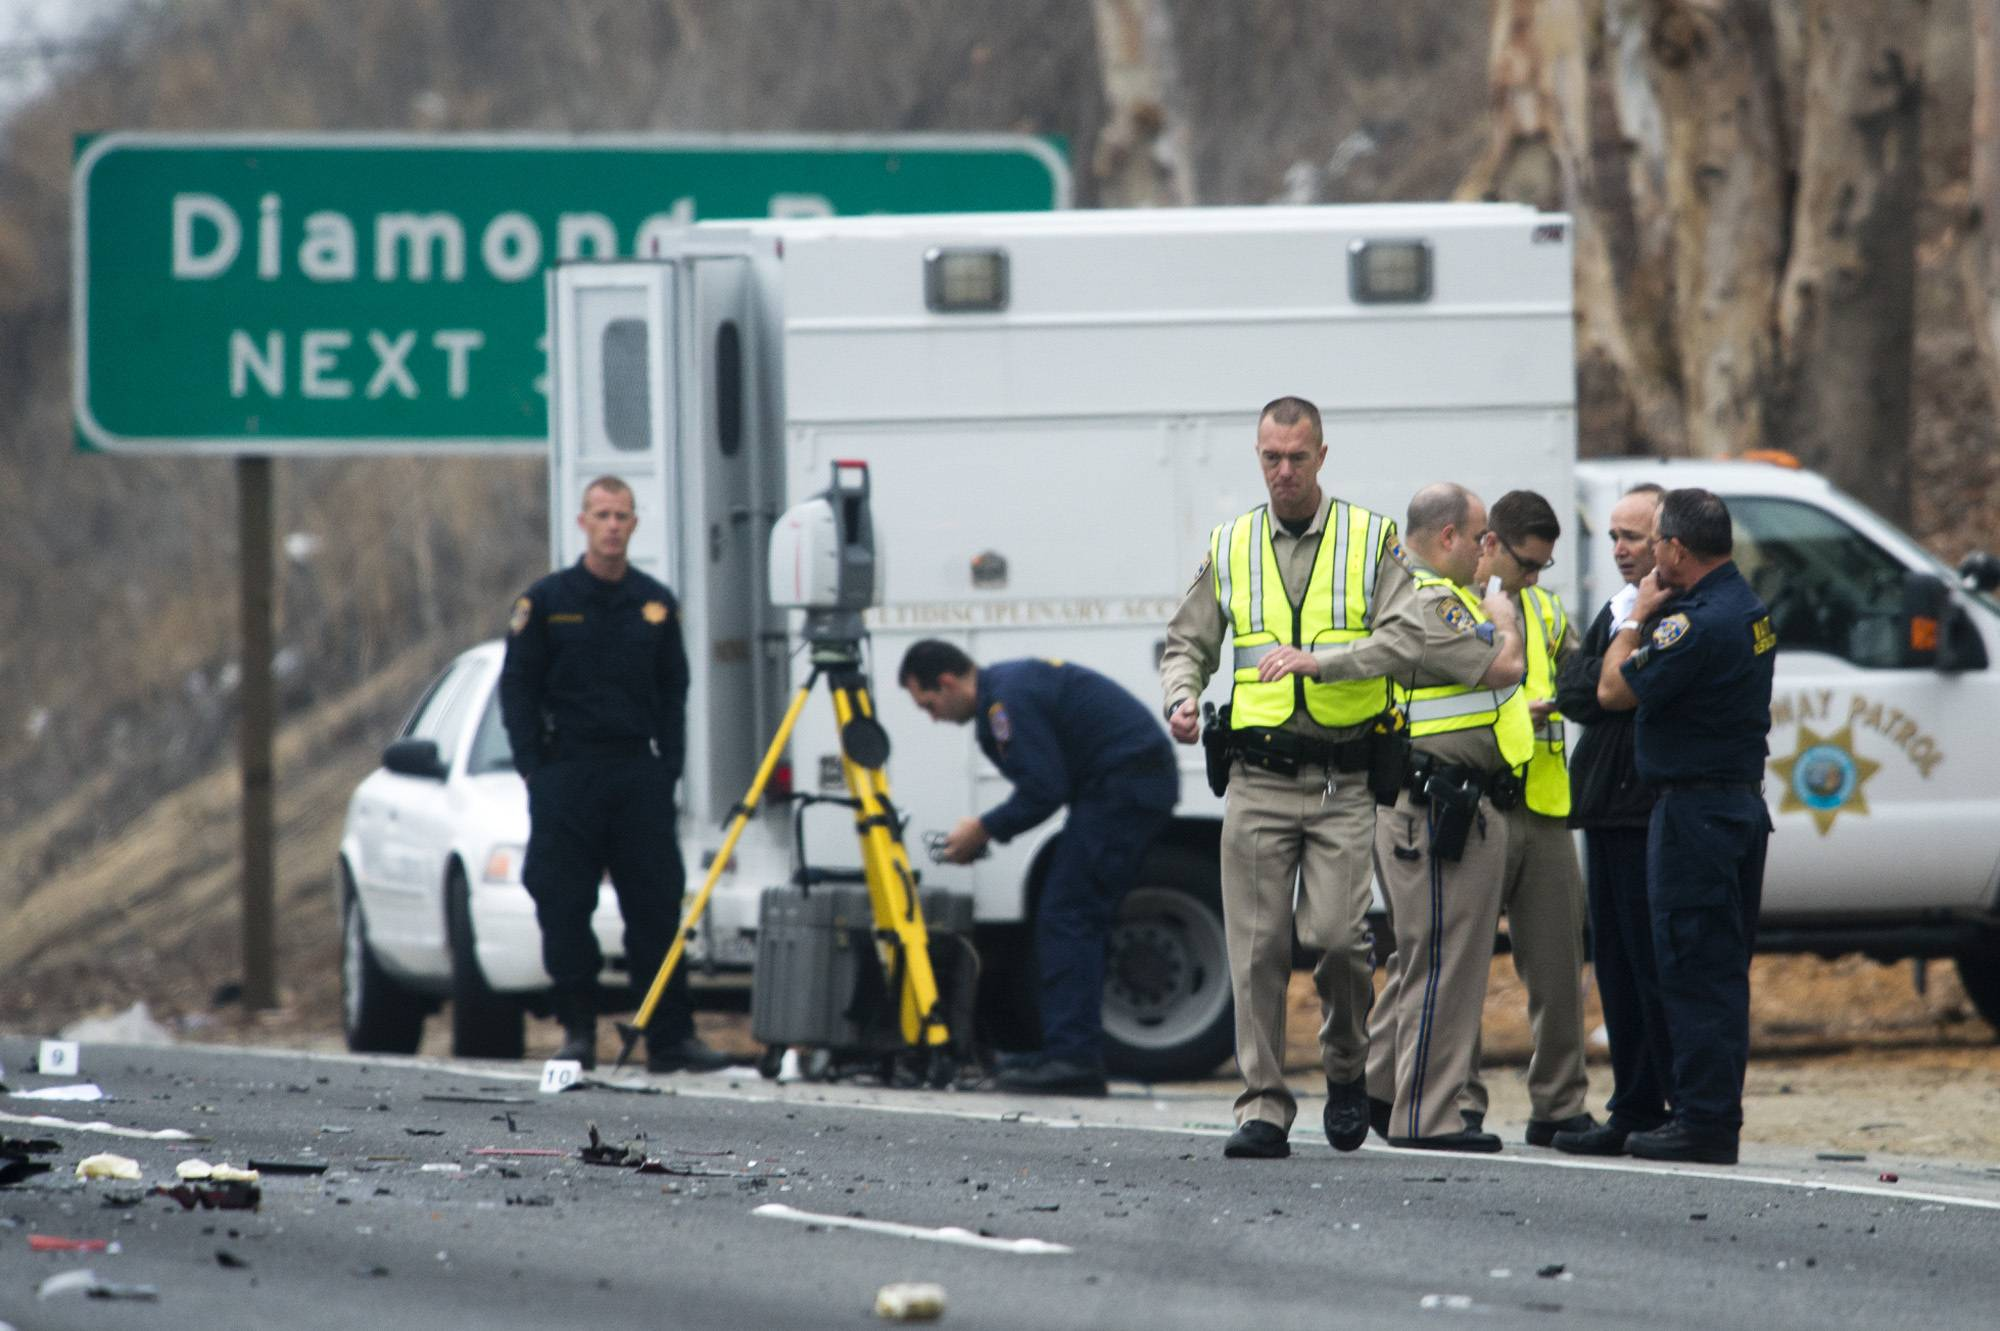 Officials investigate the scene of a multiple vehicle accident where 6 people were killed on the westbound Pomona Freeway in Diamond Bar, Calif. on Sunday morning, Feb. 9, 2013. Authorities say a wrong-way driver caused the pre-dawn crash that left six people dead.